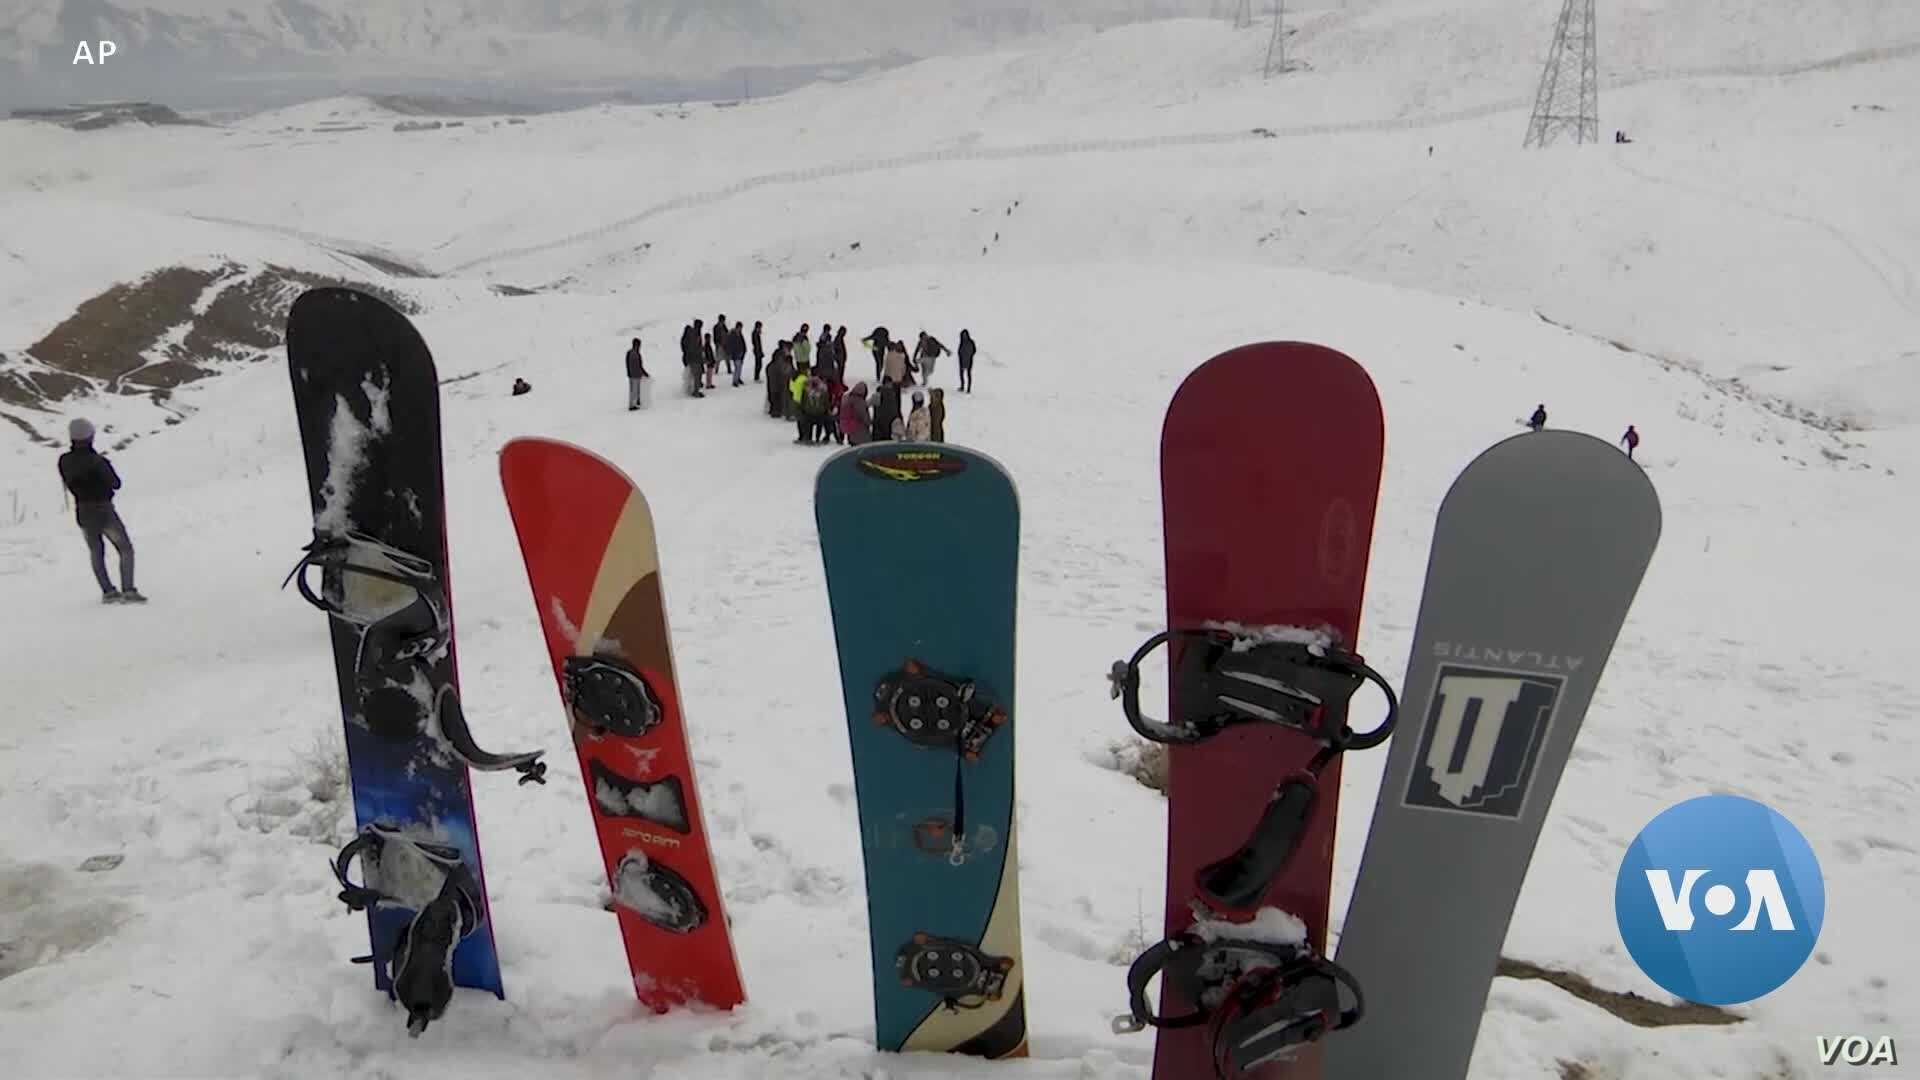 War-Weary Young Afghans Hit the Slopes